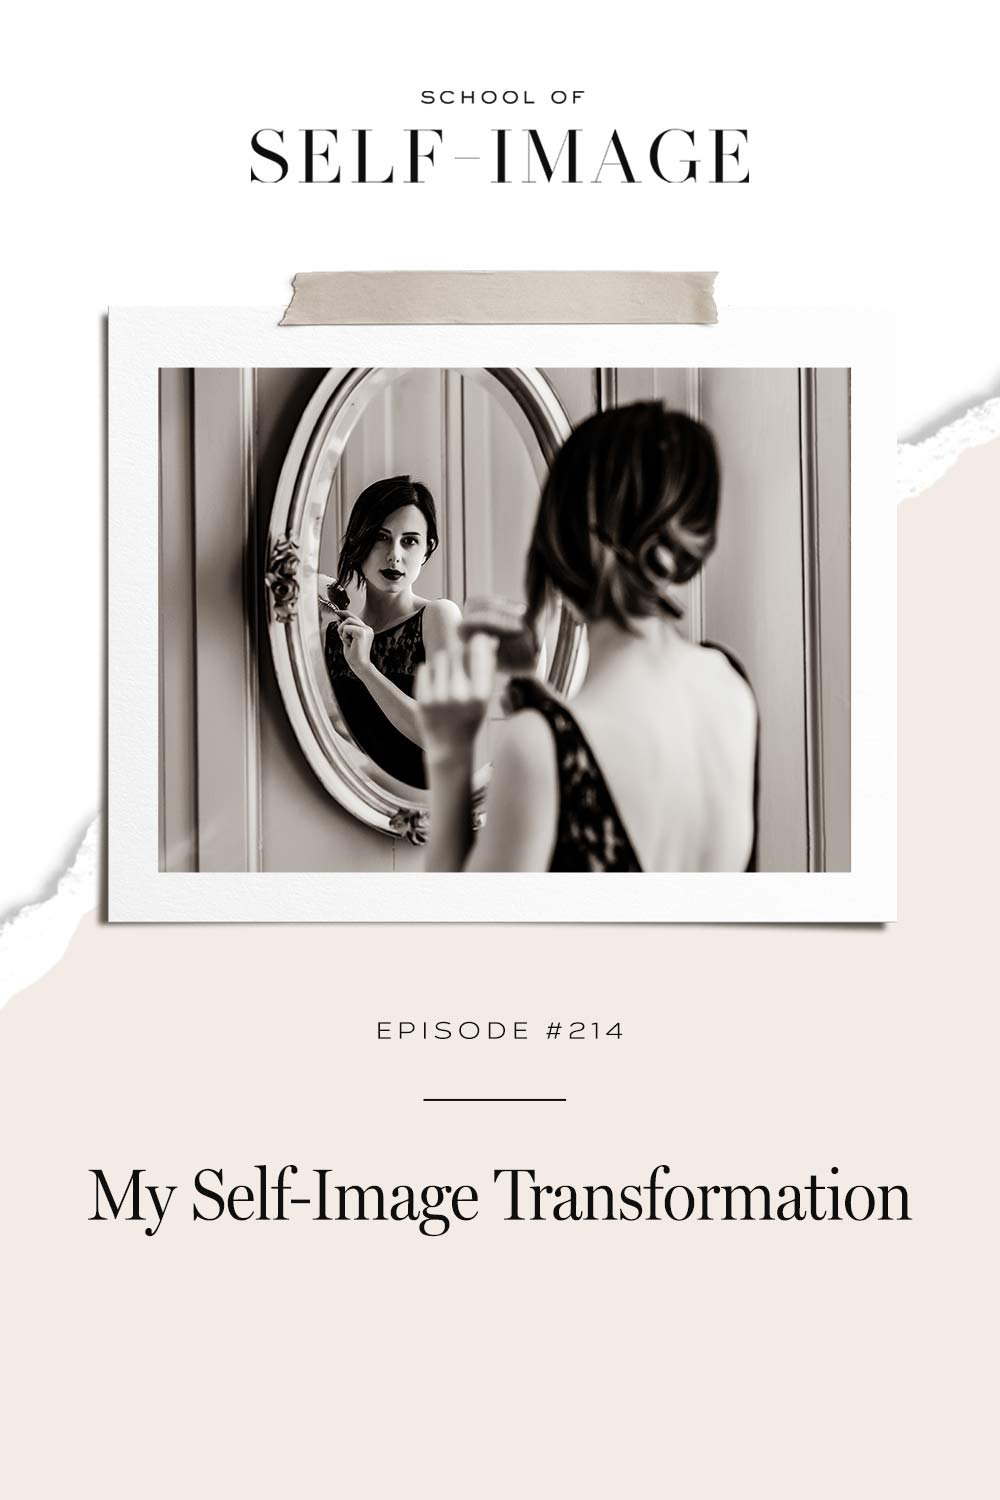 What is possible for your life when you decide to transform your self-image.